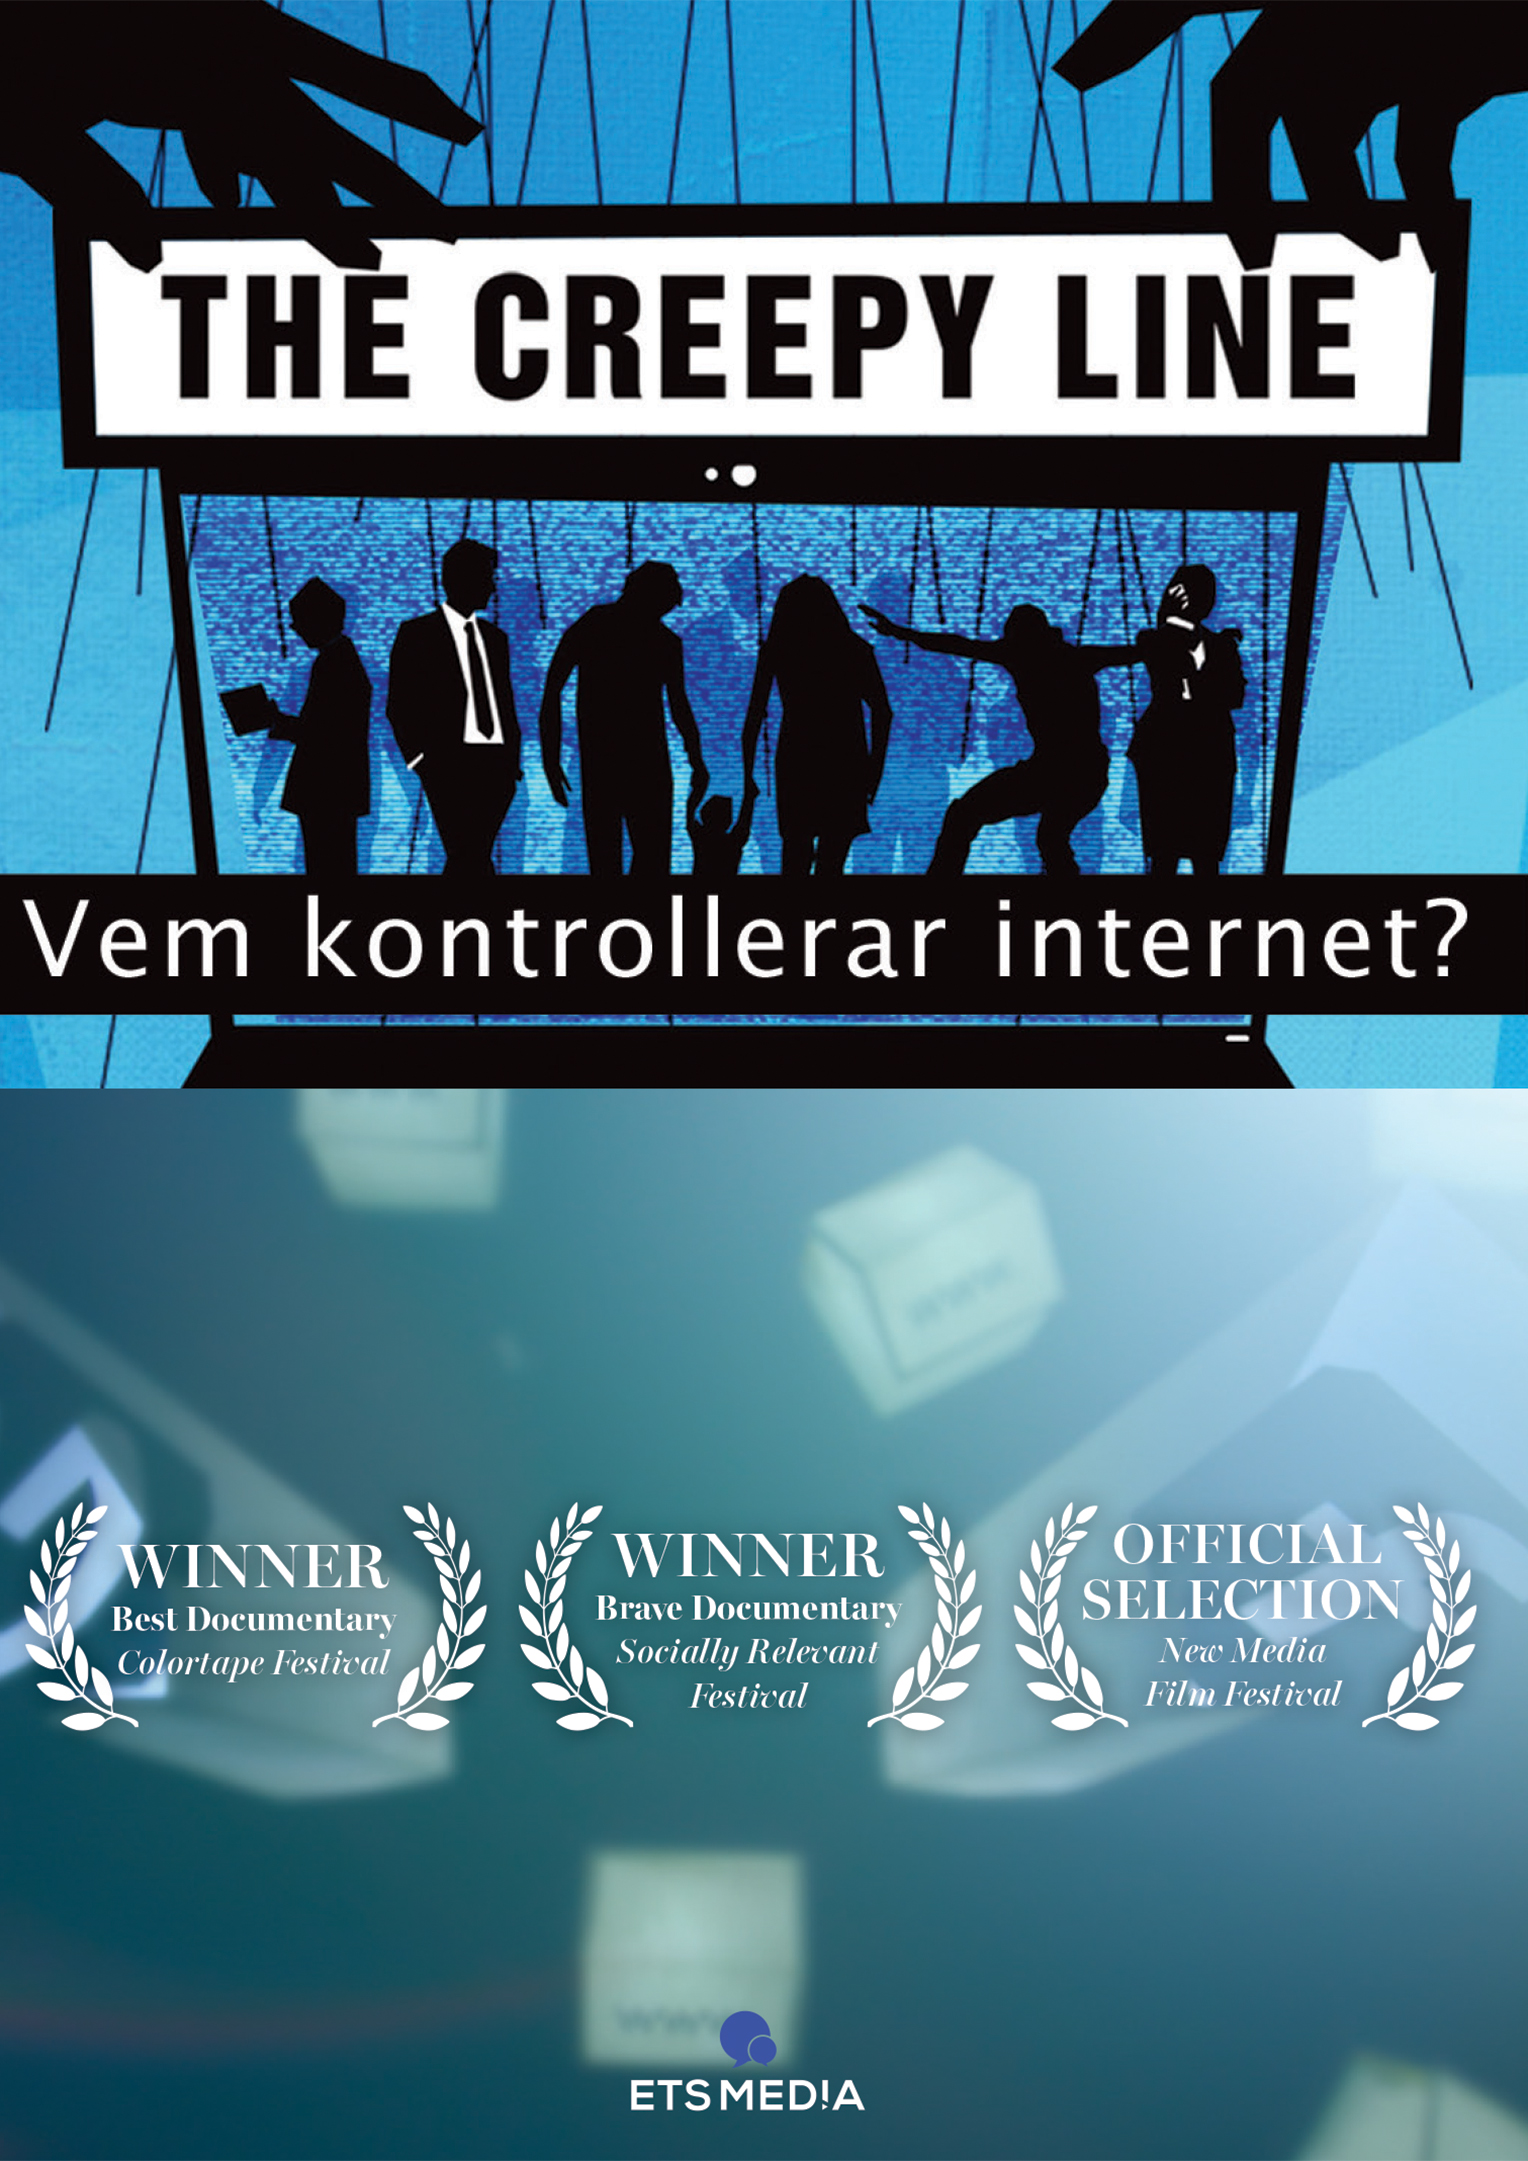 The Creepy Line